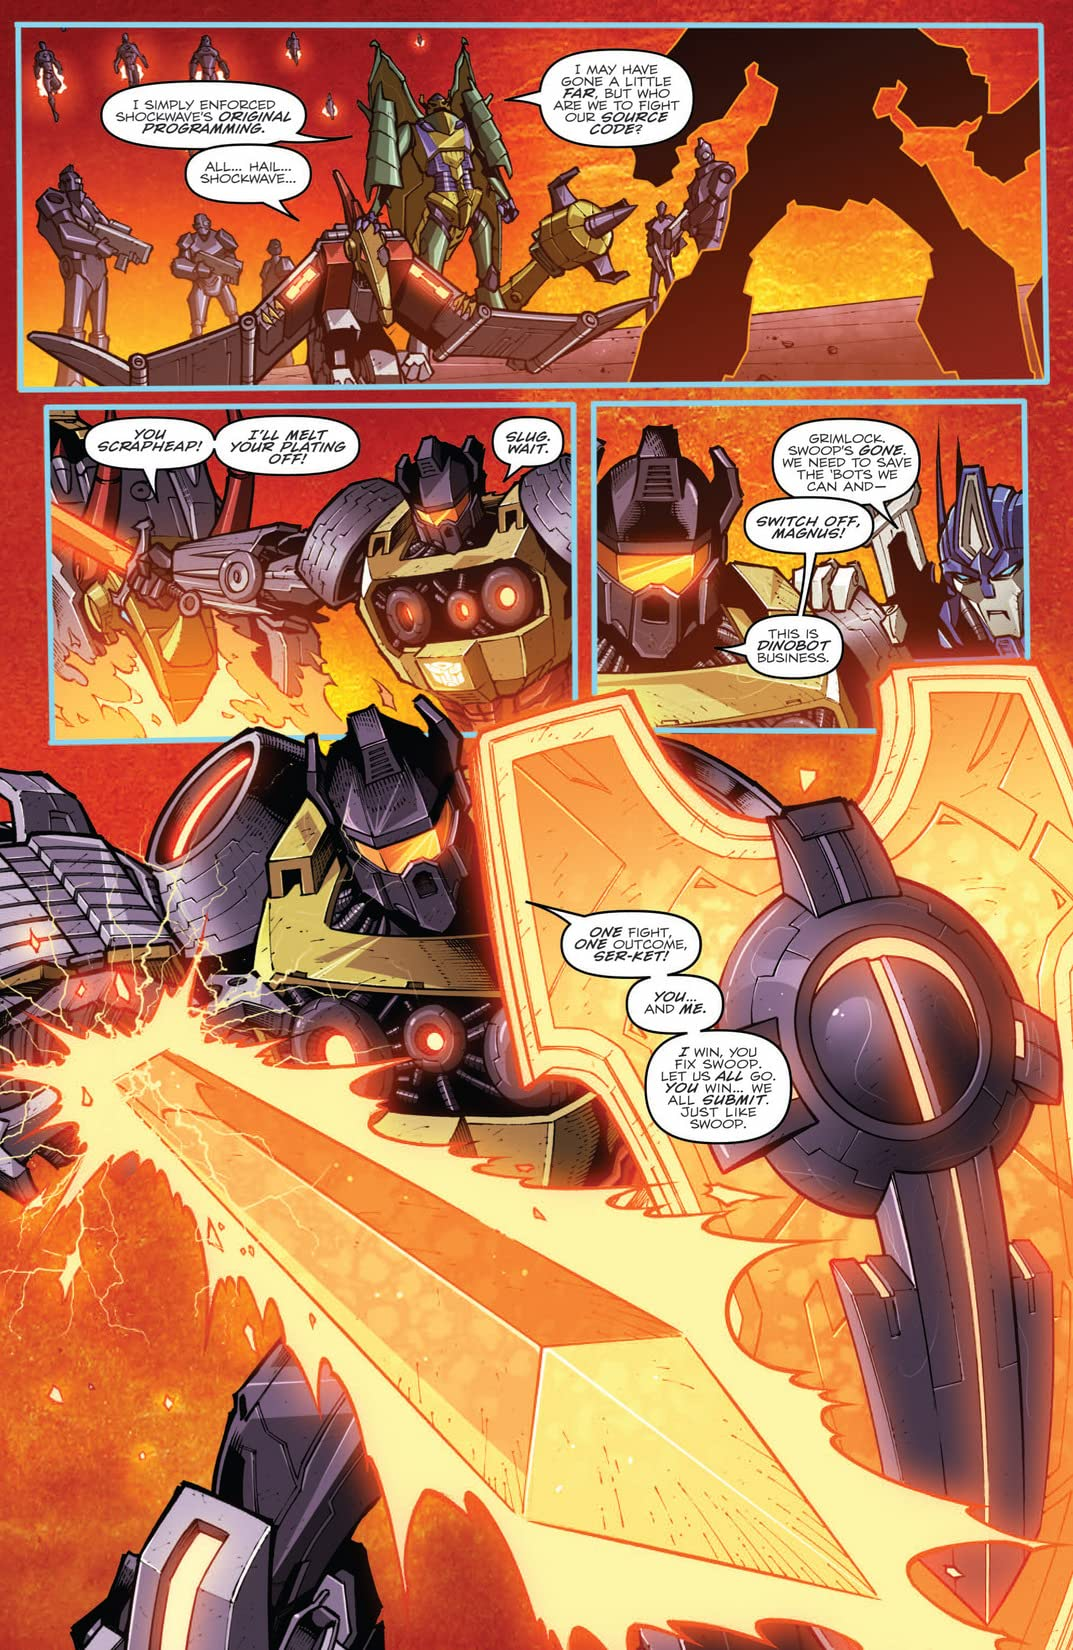 Transformers: Prime - Rage of the Dinobots #3 (of 4)